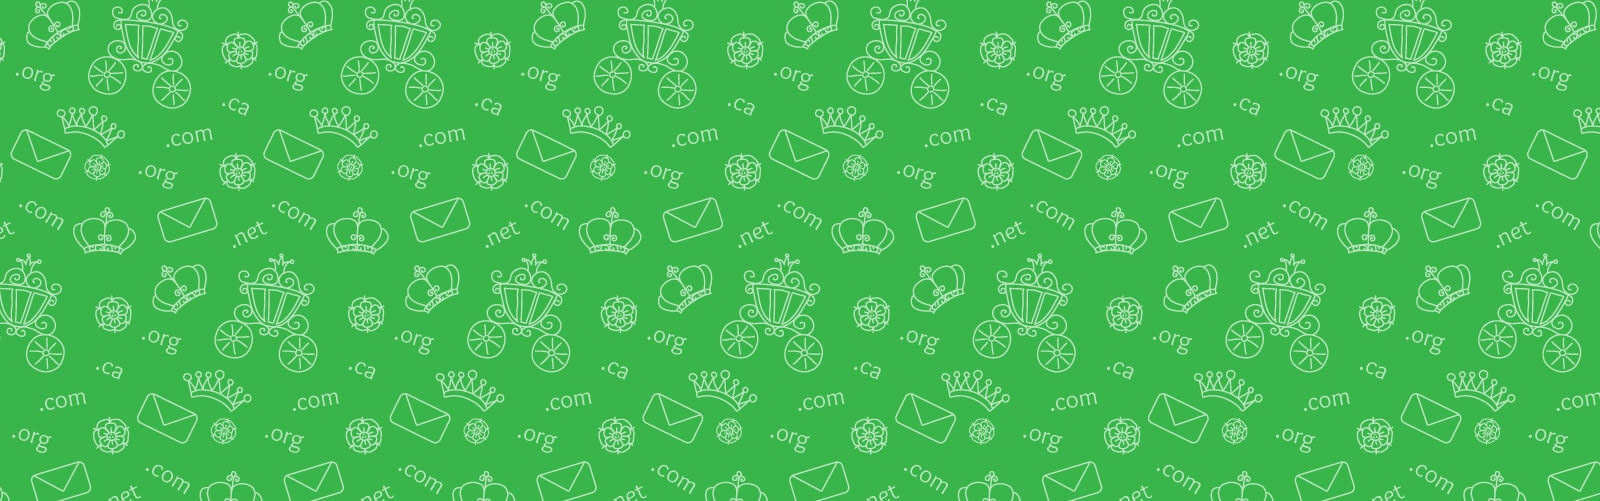 repeat illustration of email, domain and crown icons